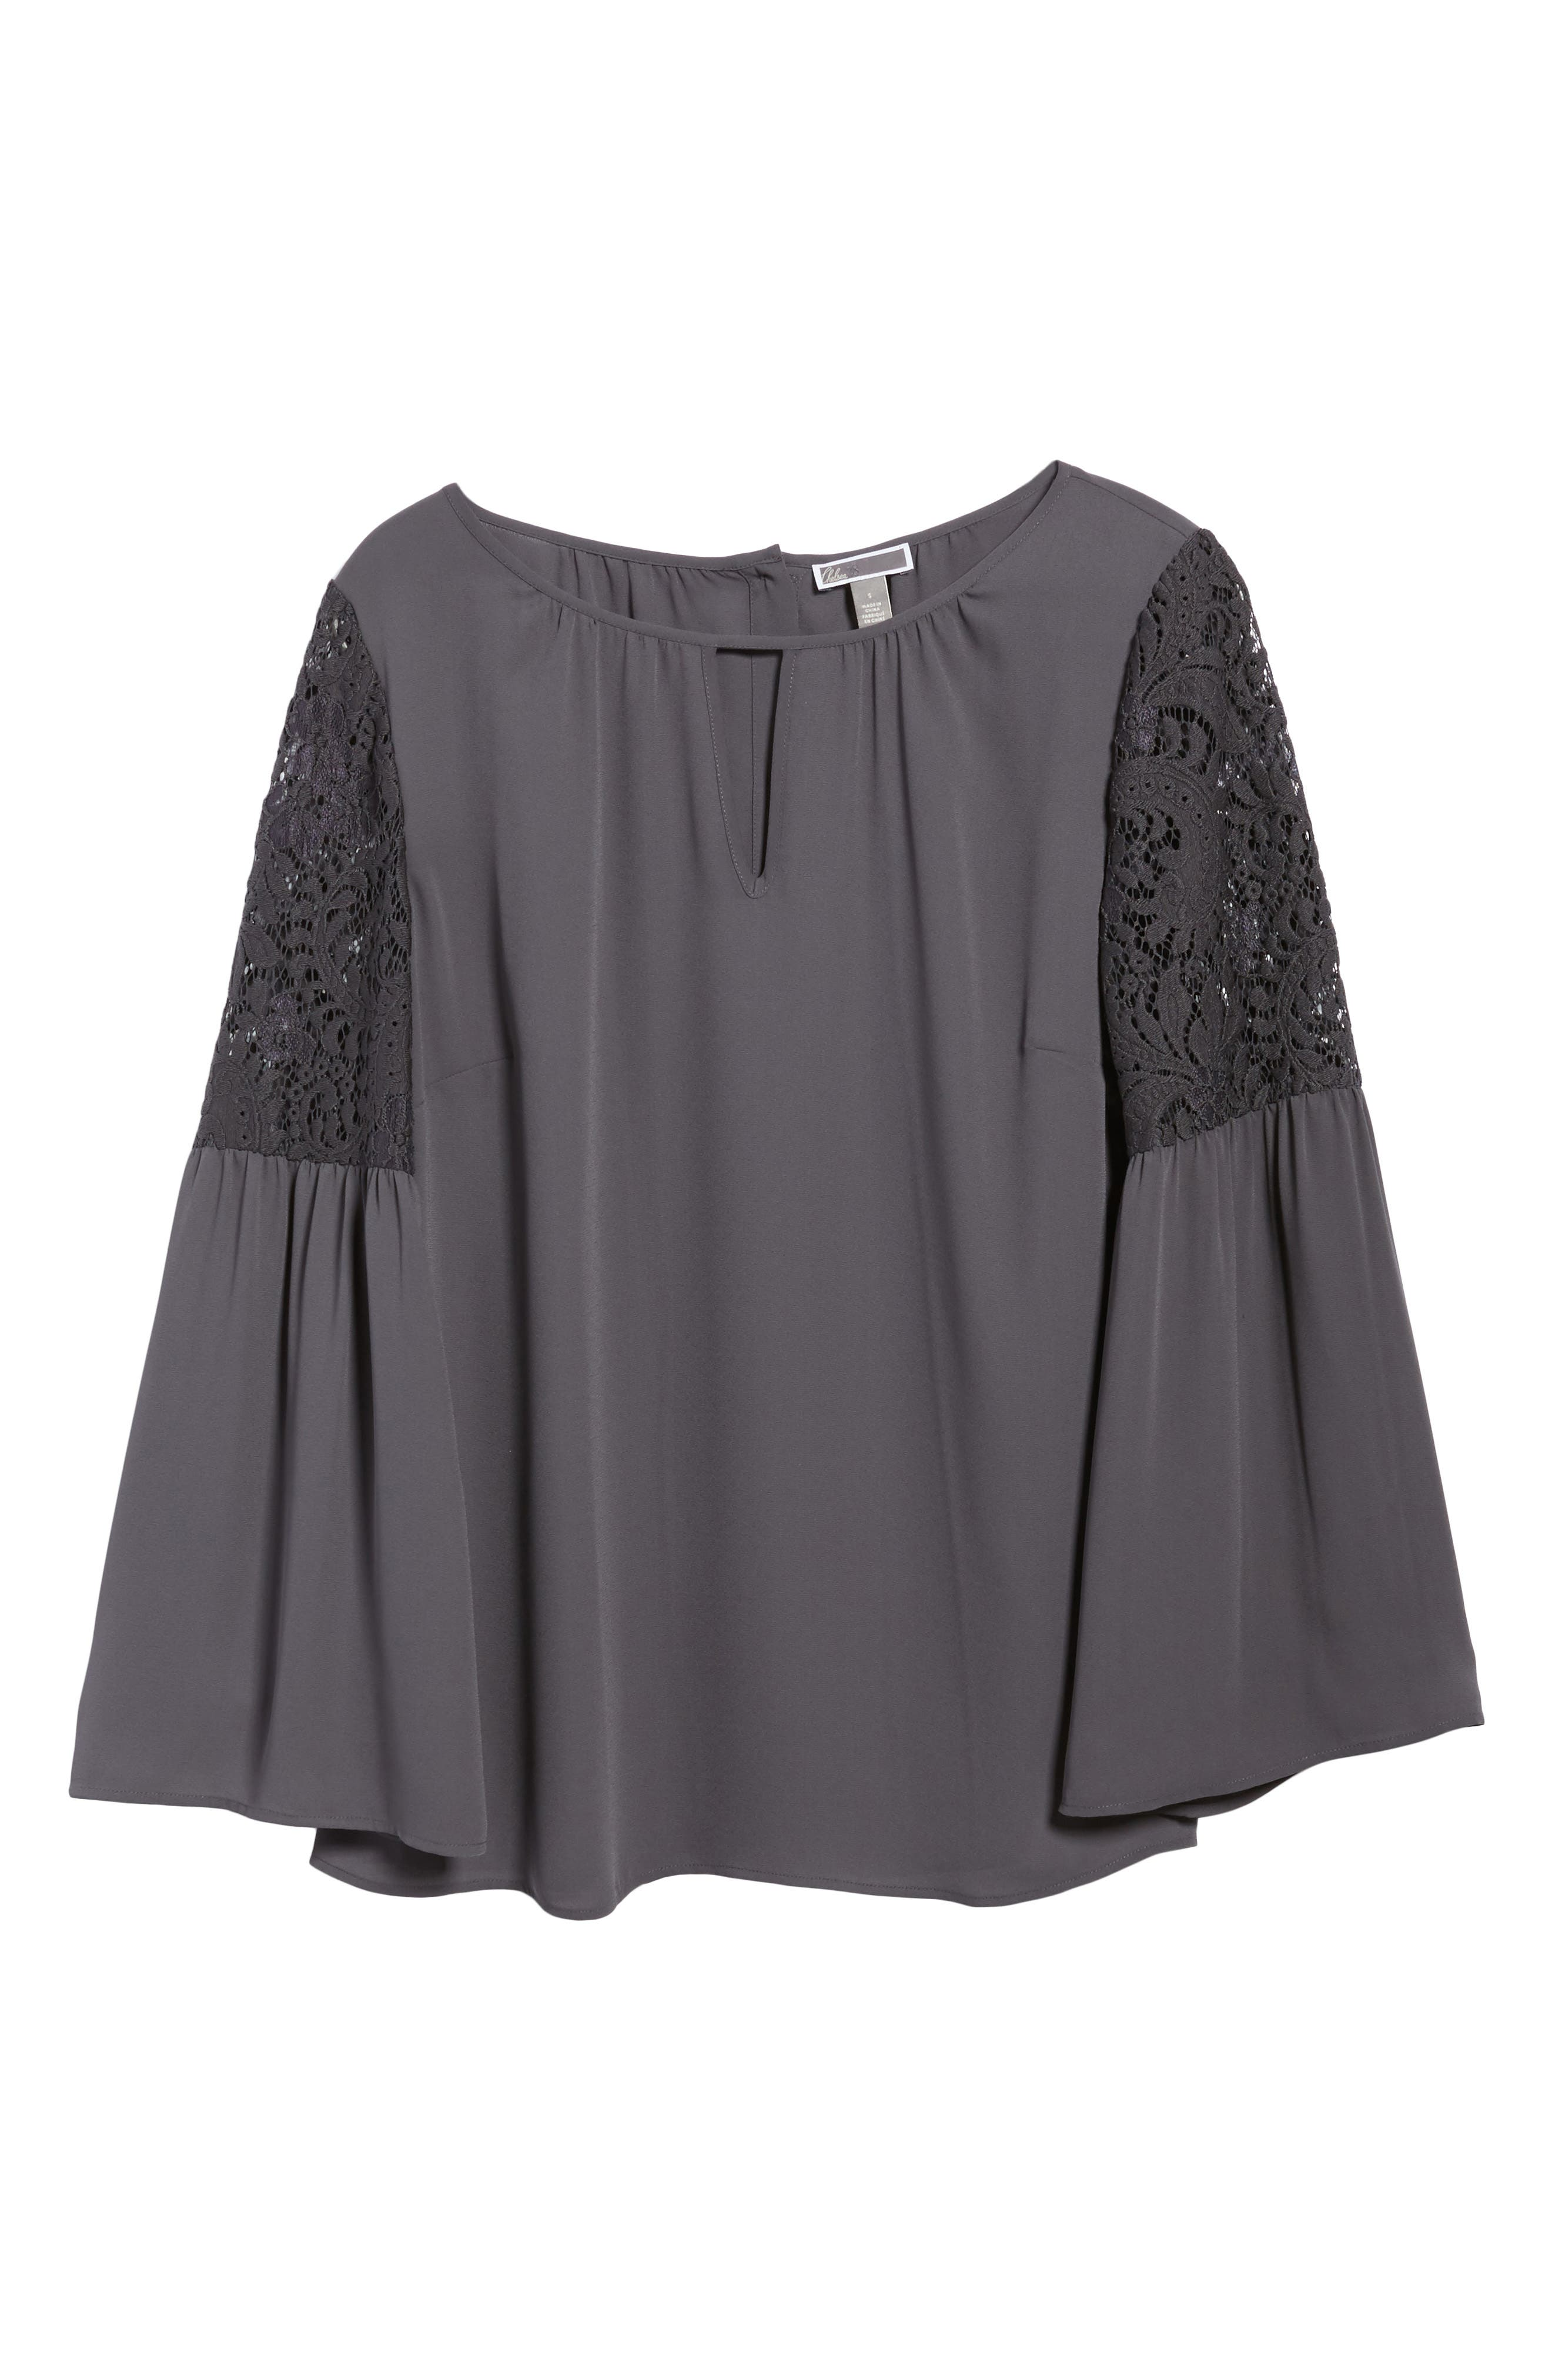 Lace Bell Sleeve Top,                             Alternate thumbnail 7, color,                             021